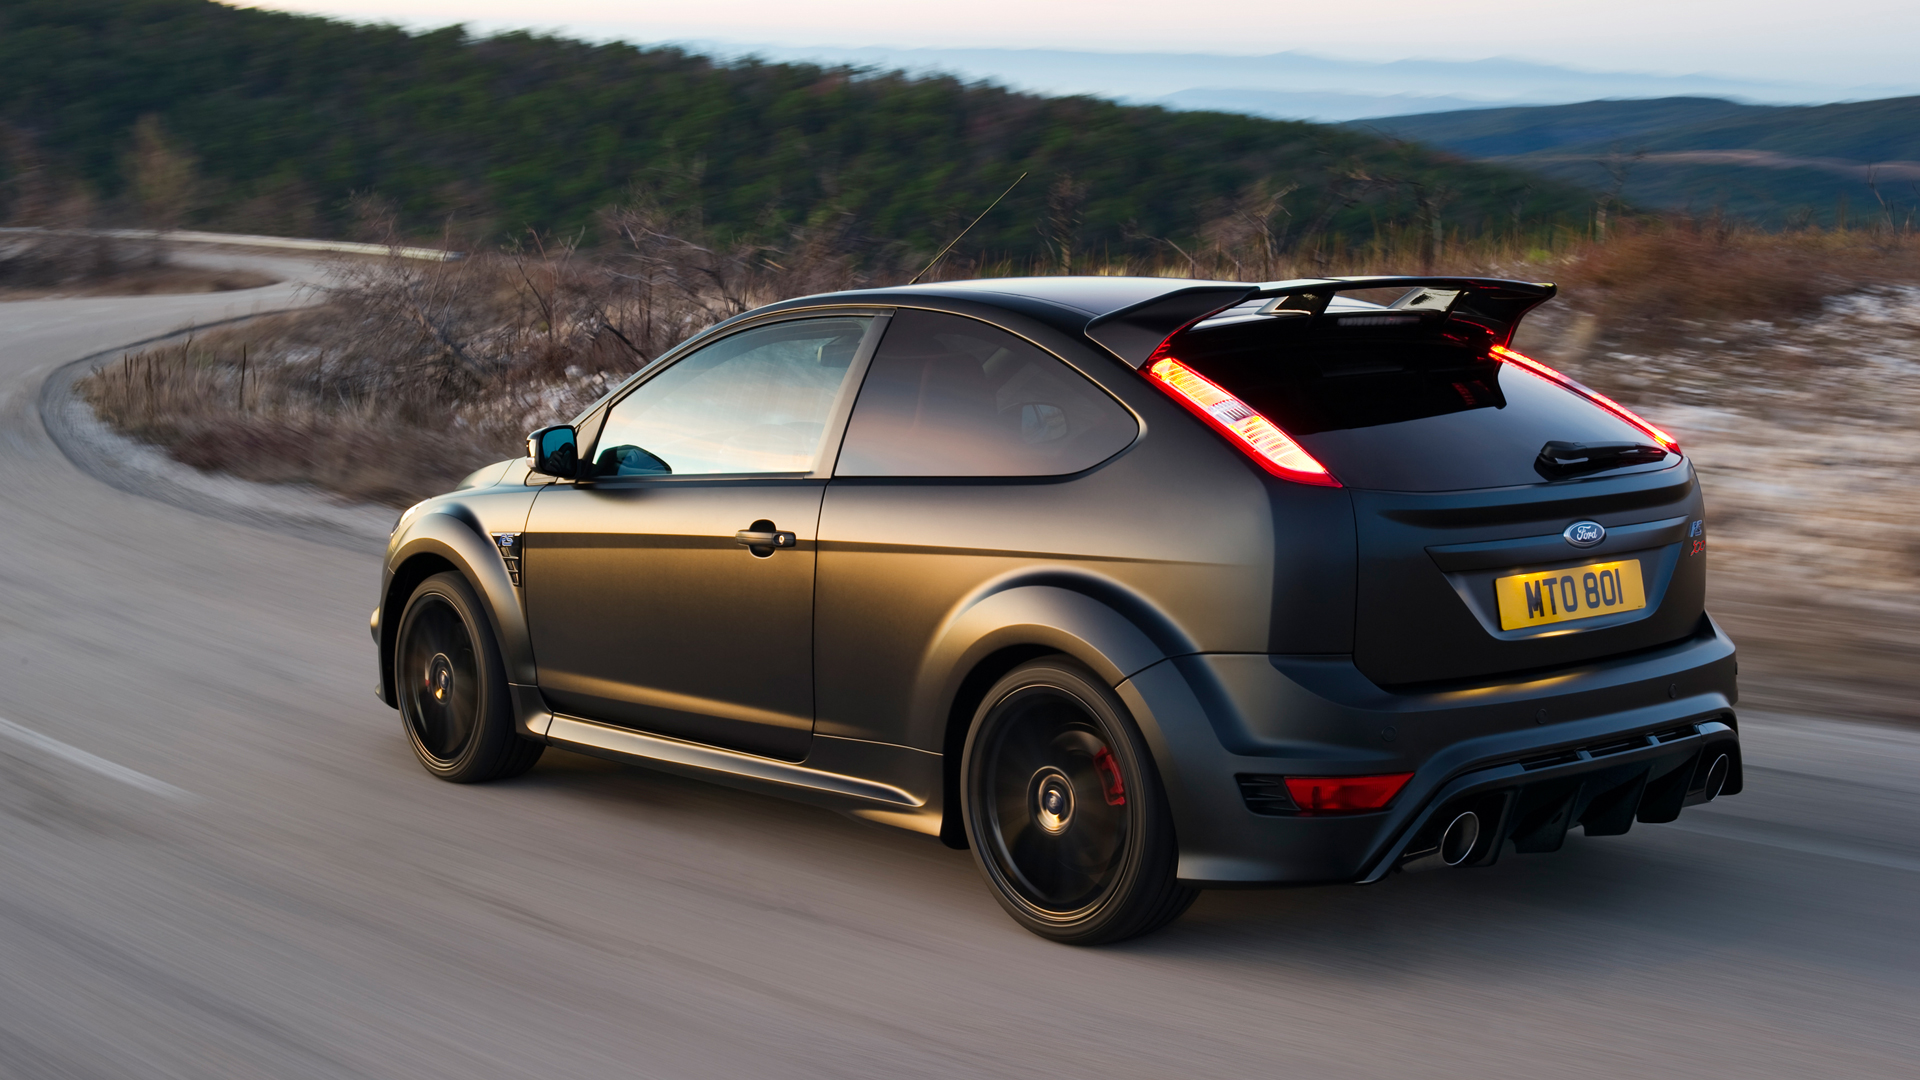 Ford Focus RS HD Wallpapers 1920x1080